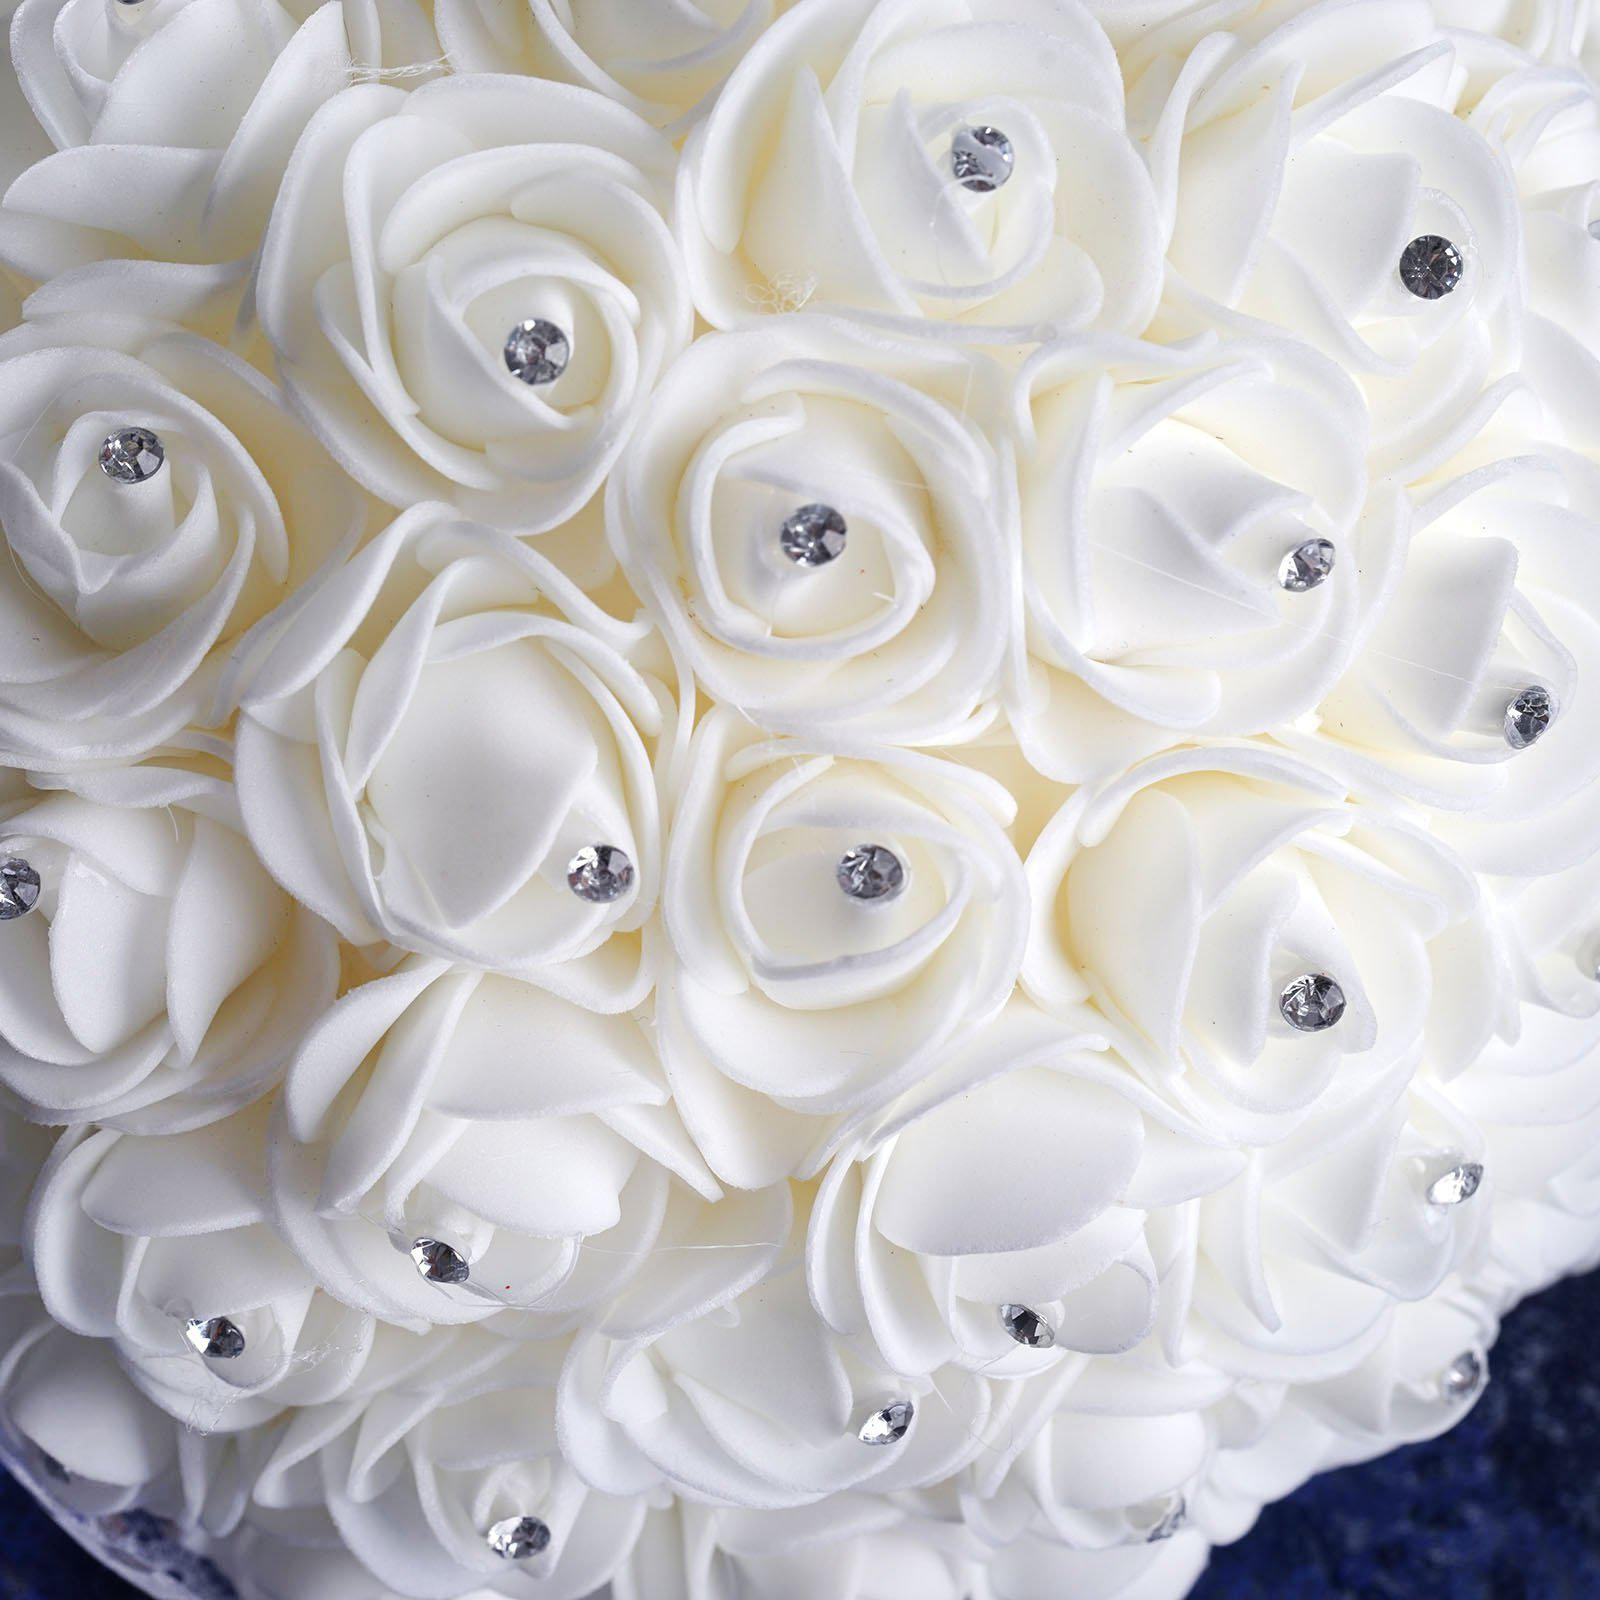 4 Pack White Artificial Rhinestone Studded Foam Rose Flower Bridal